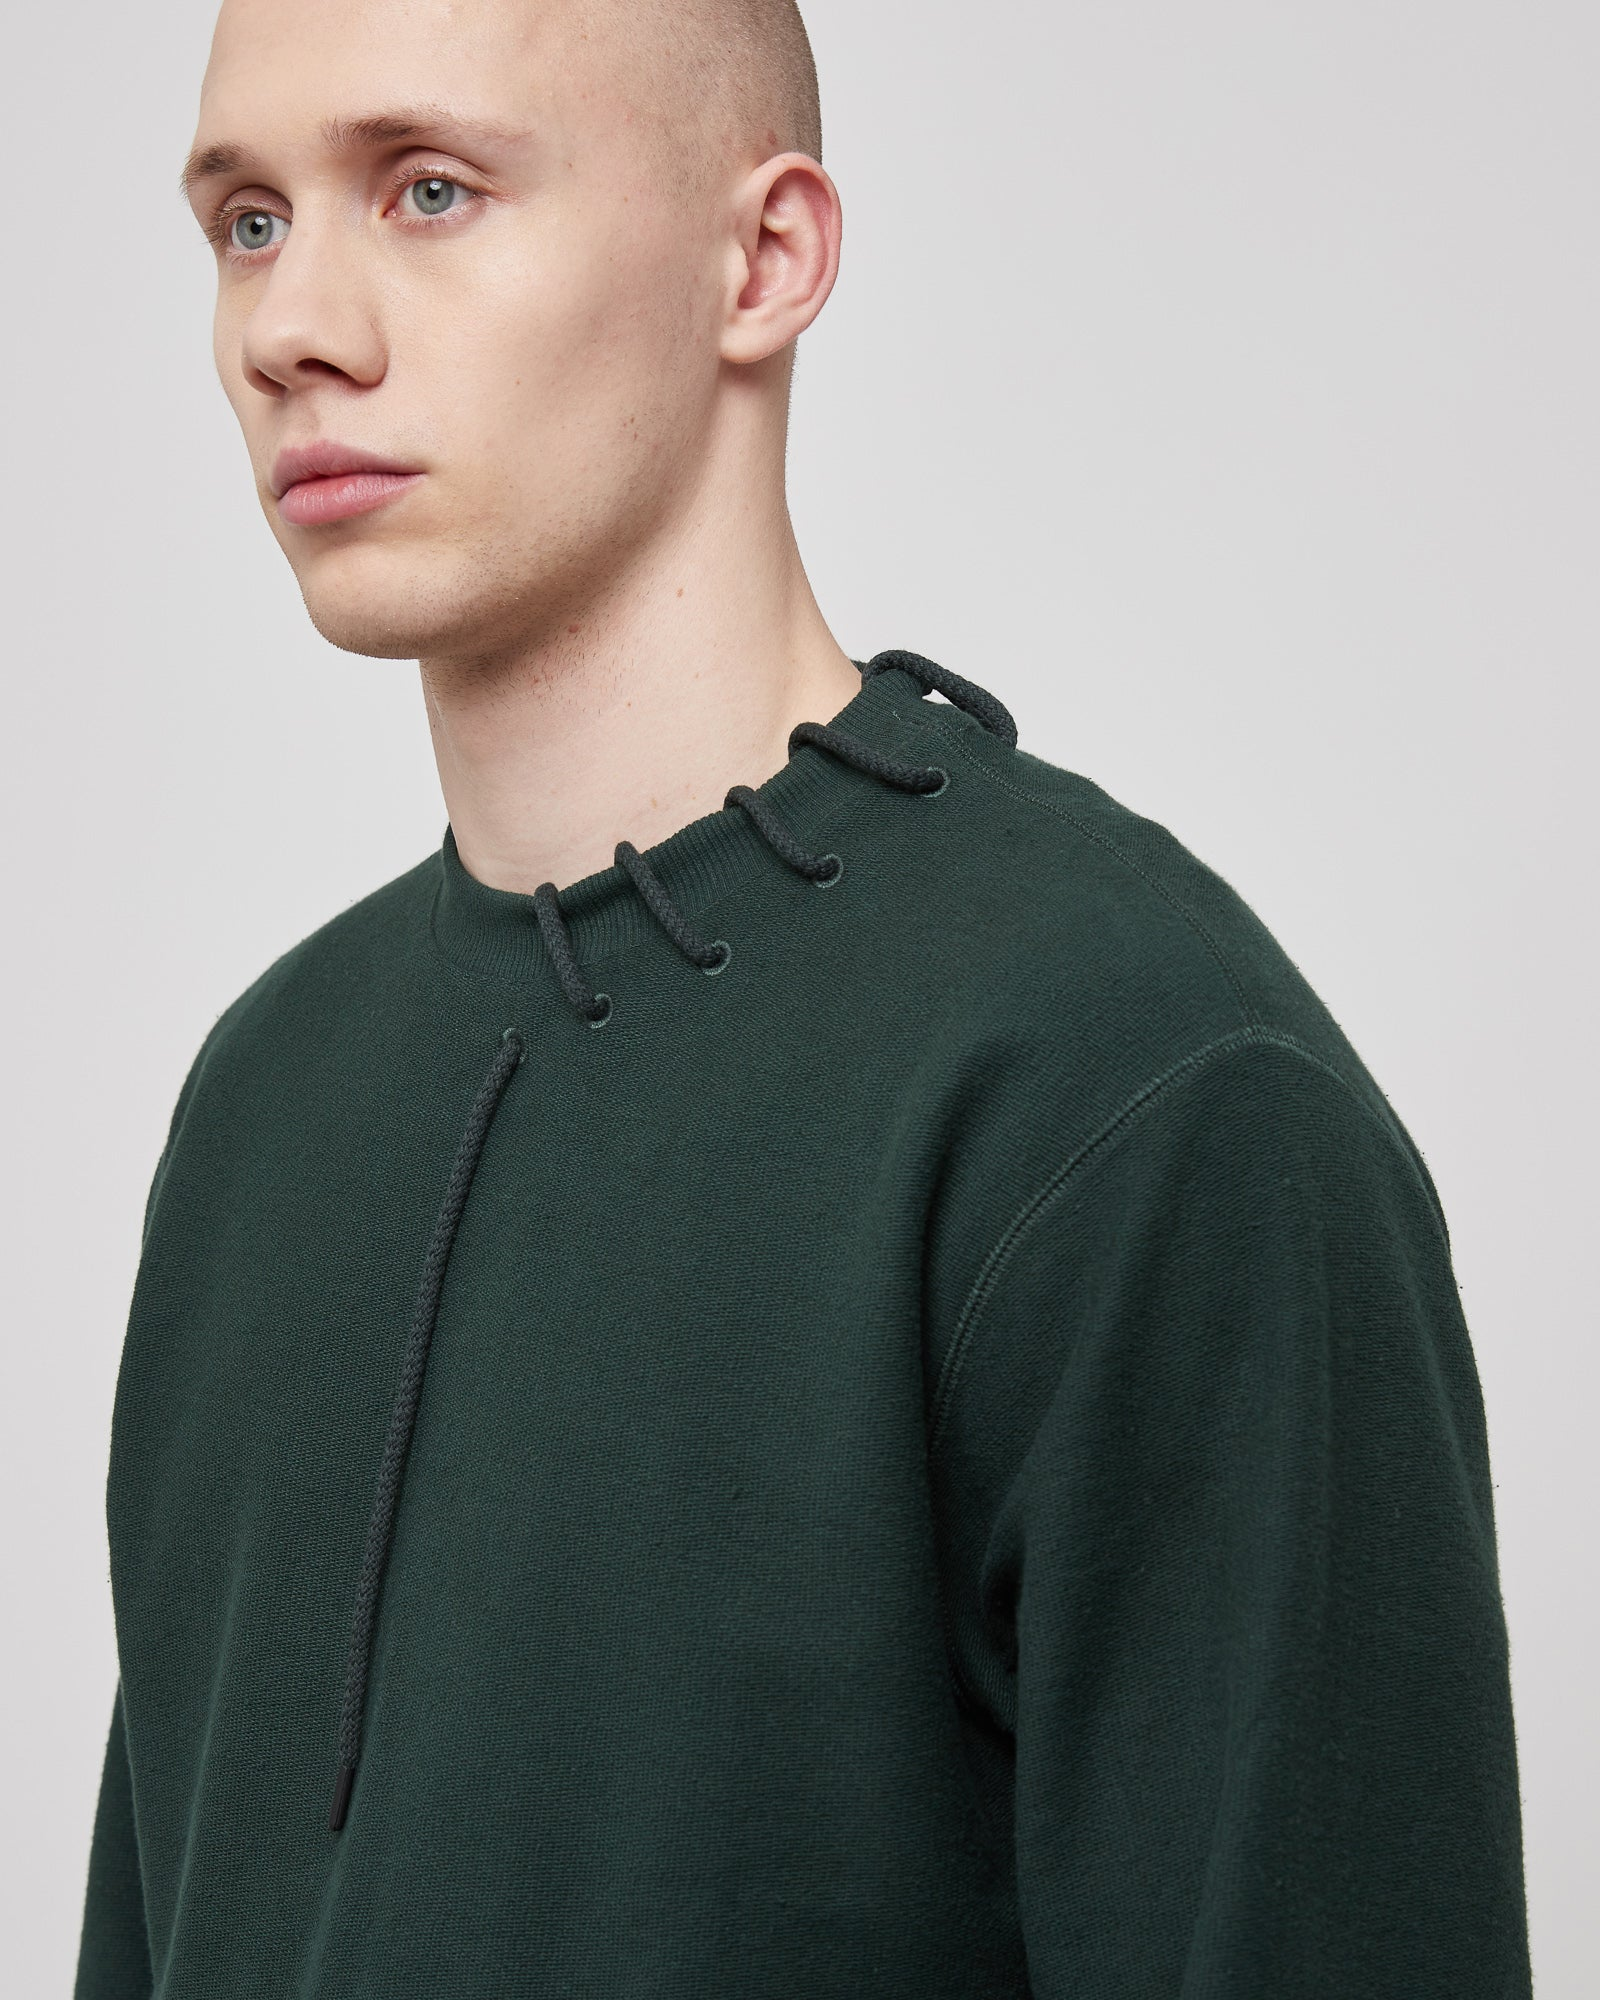 Laced Sweatshirt in Dark Green